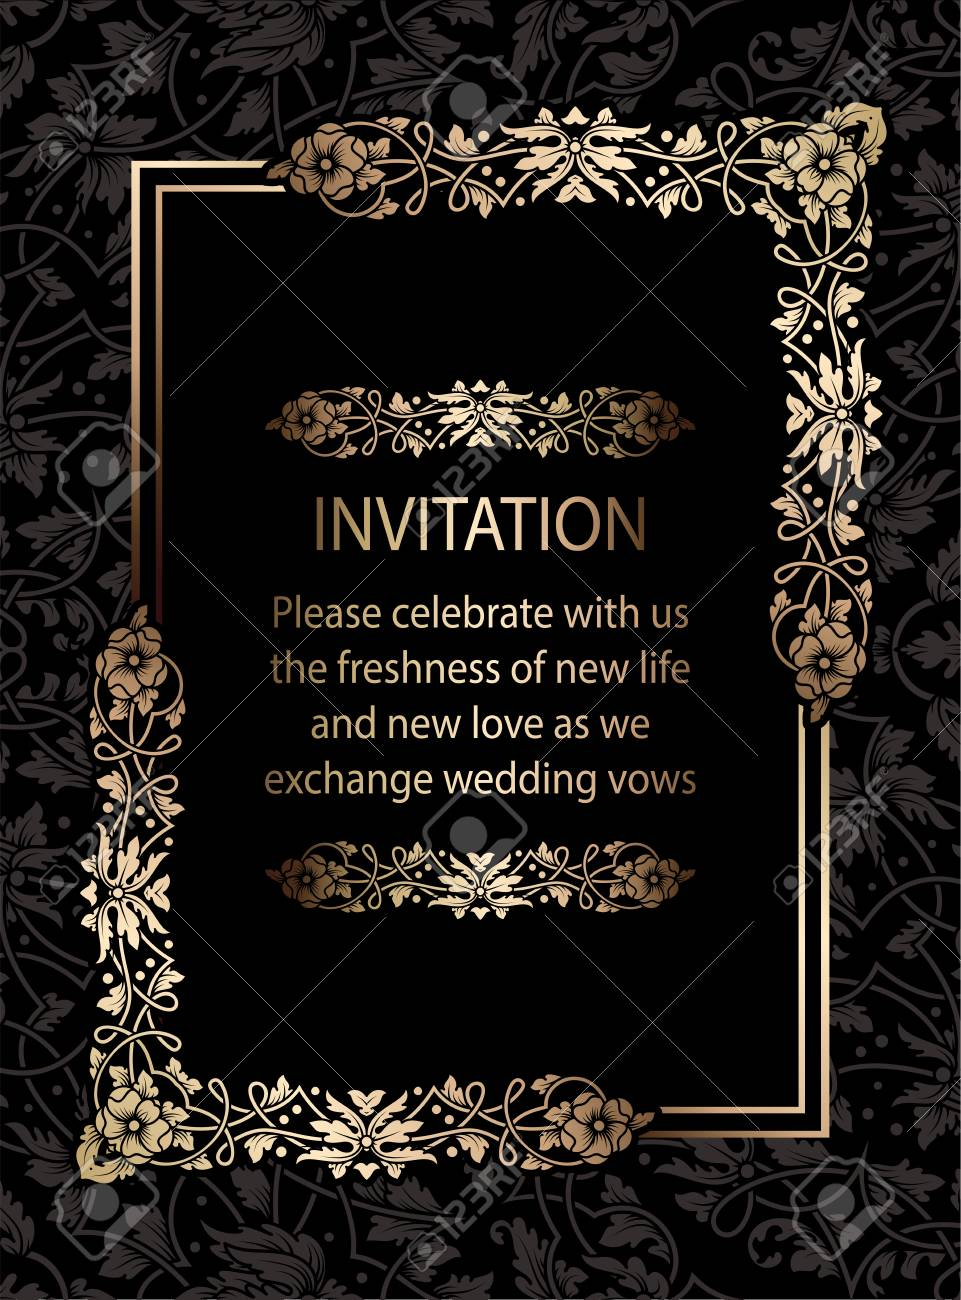 Floral Invitation Card Or Background With Antique, Luxury Black.. Royalty  Free Cliparts, Vectors, And Stock Illustration. Image 79310260.